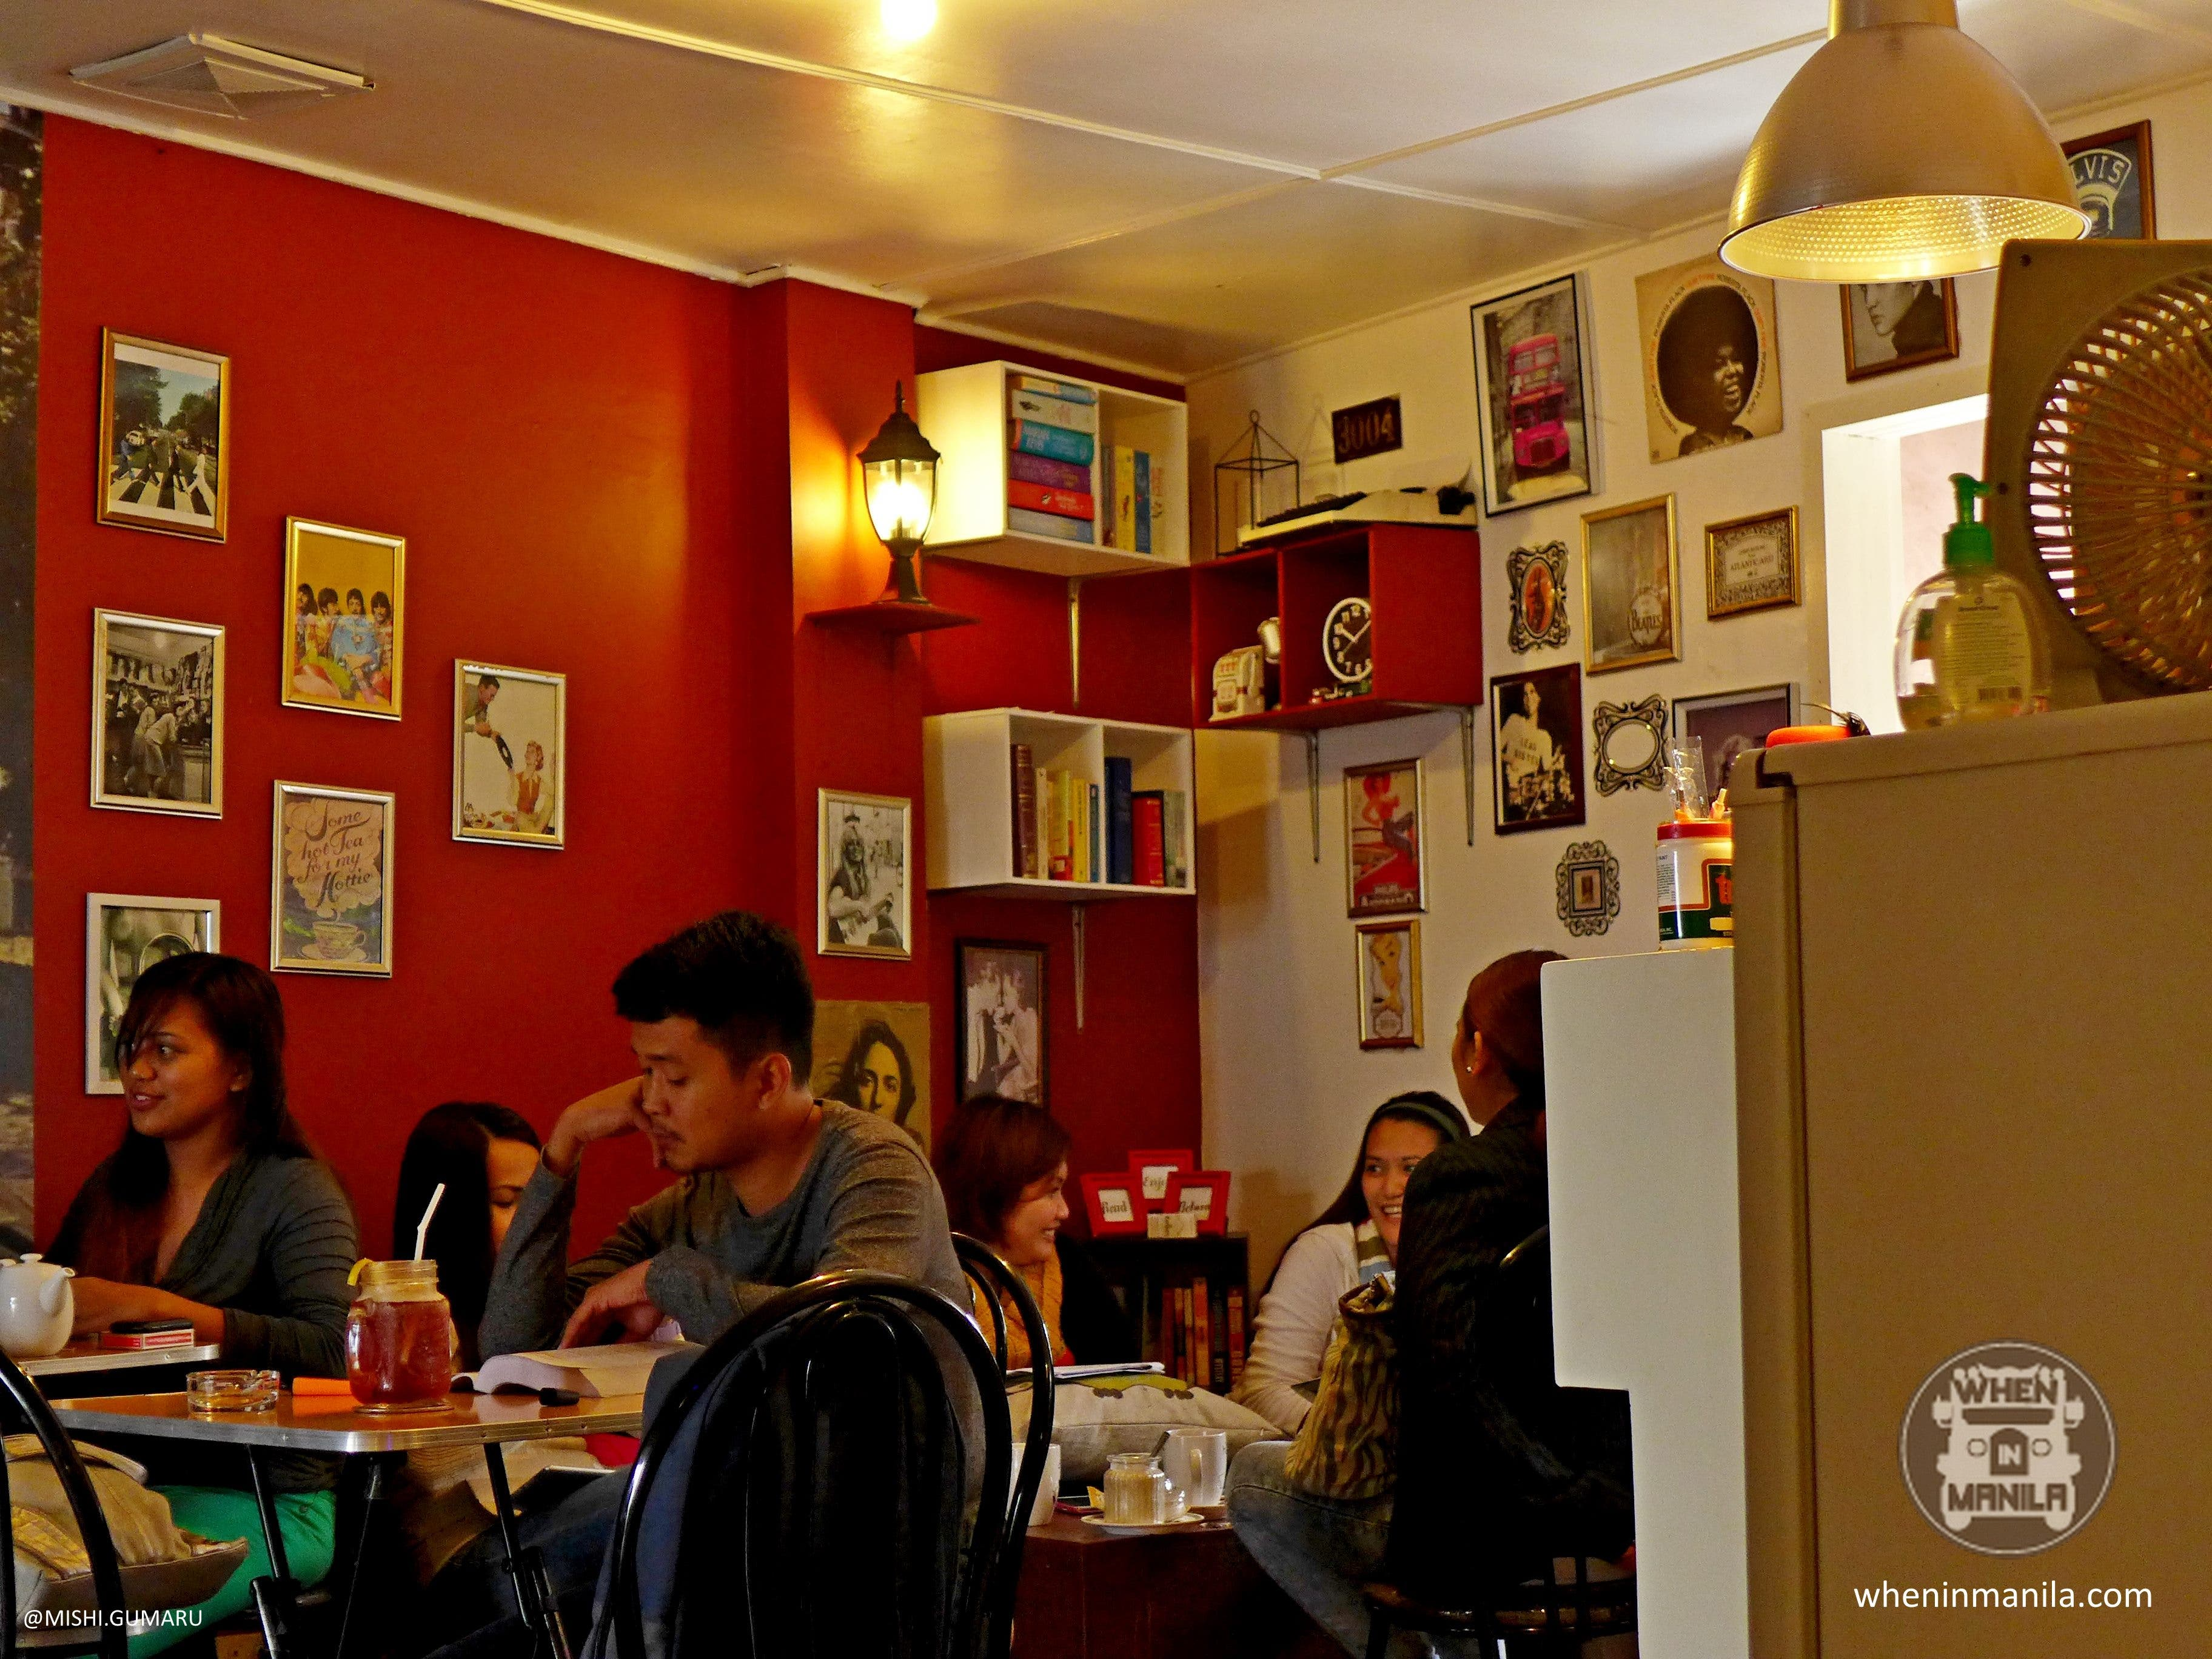 5-Cool-And-Quirky-Cafes-You-Must-Check-Out-When-In-Baguio8